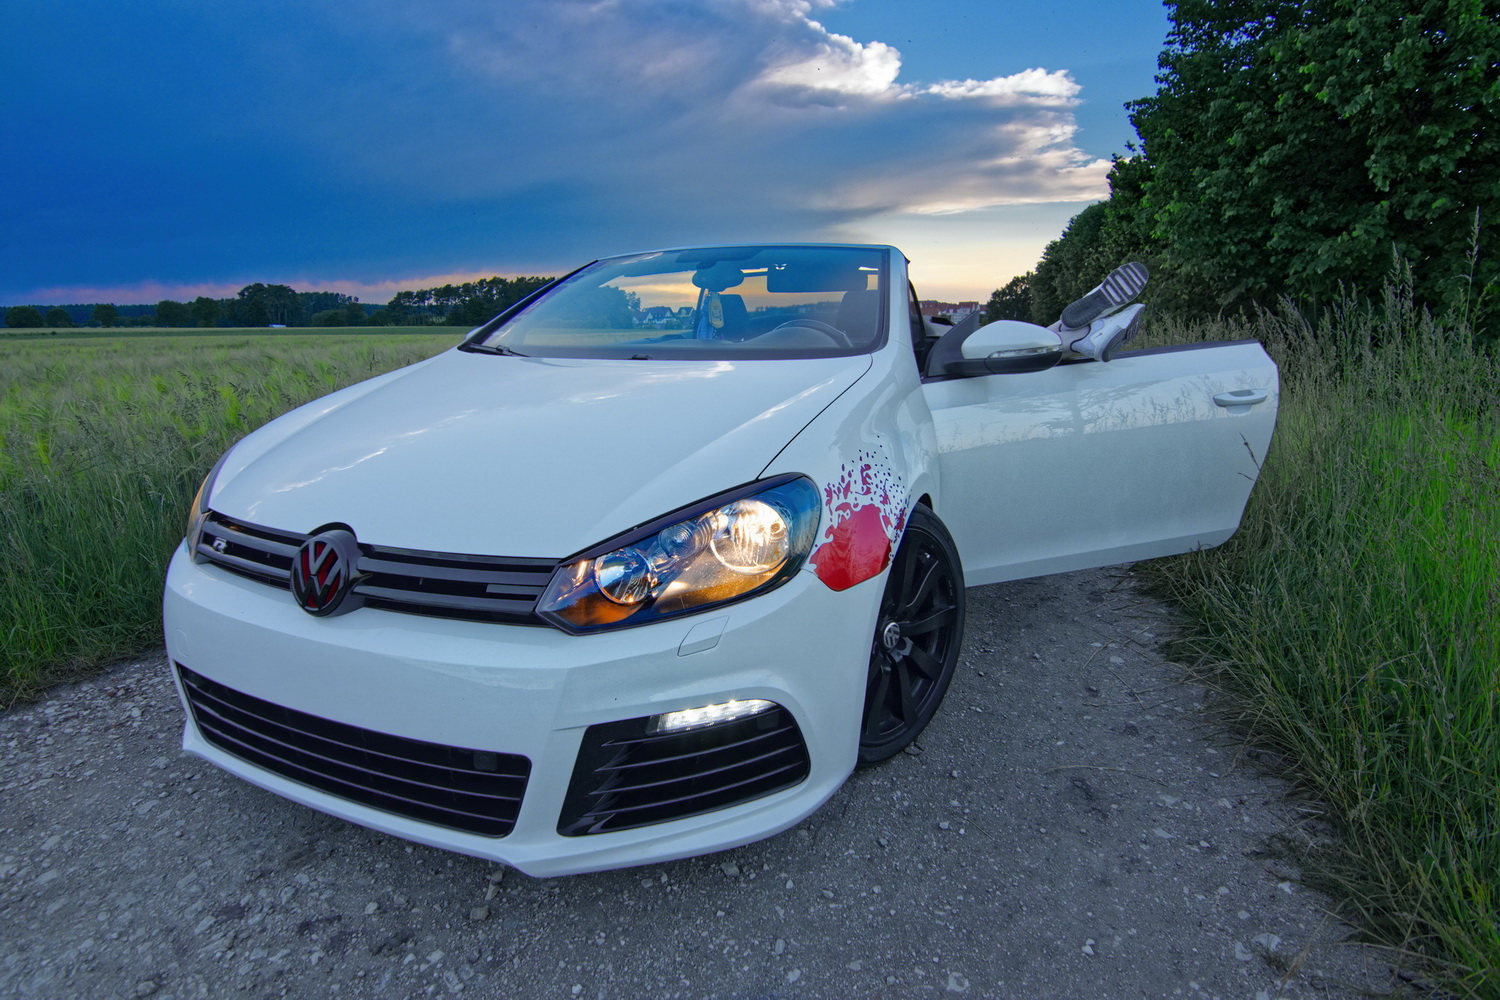 VW Golf 6 GTI Cabriolet 2.0 TSI (2014 series) – R-modded